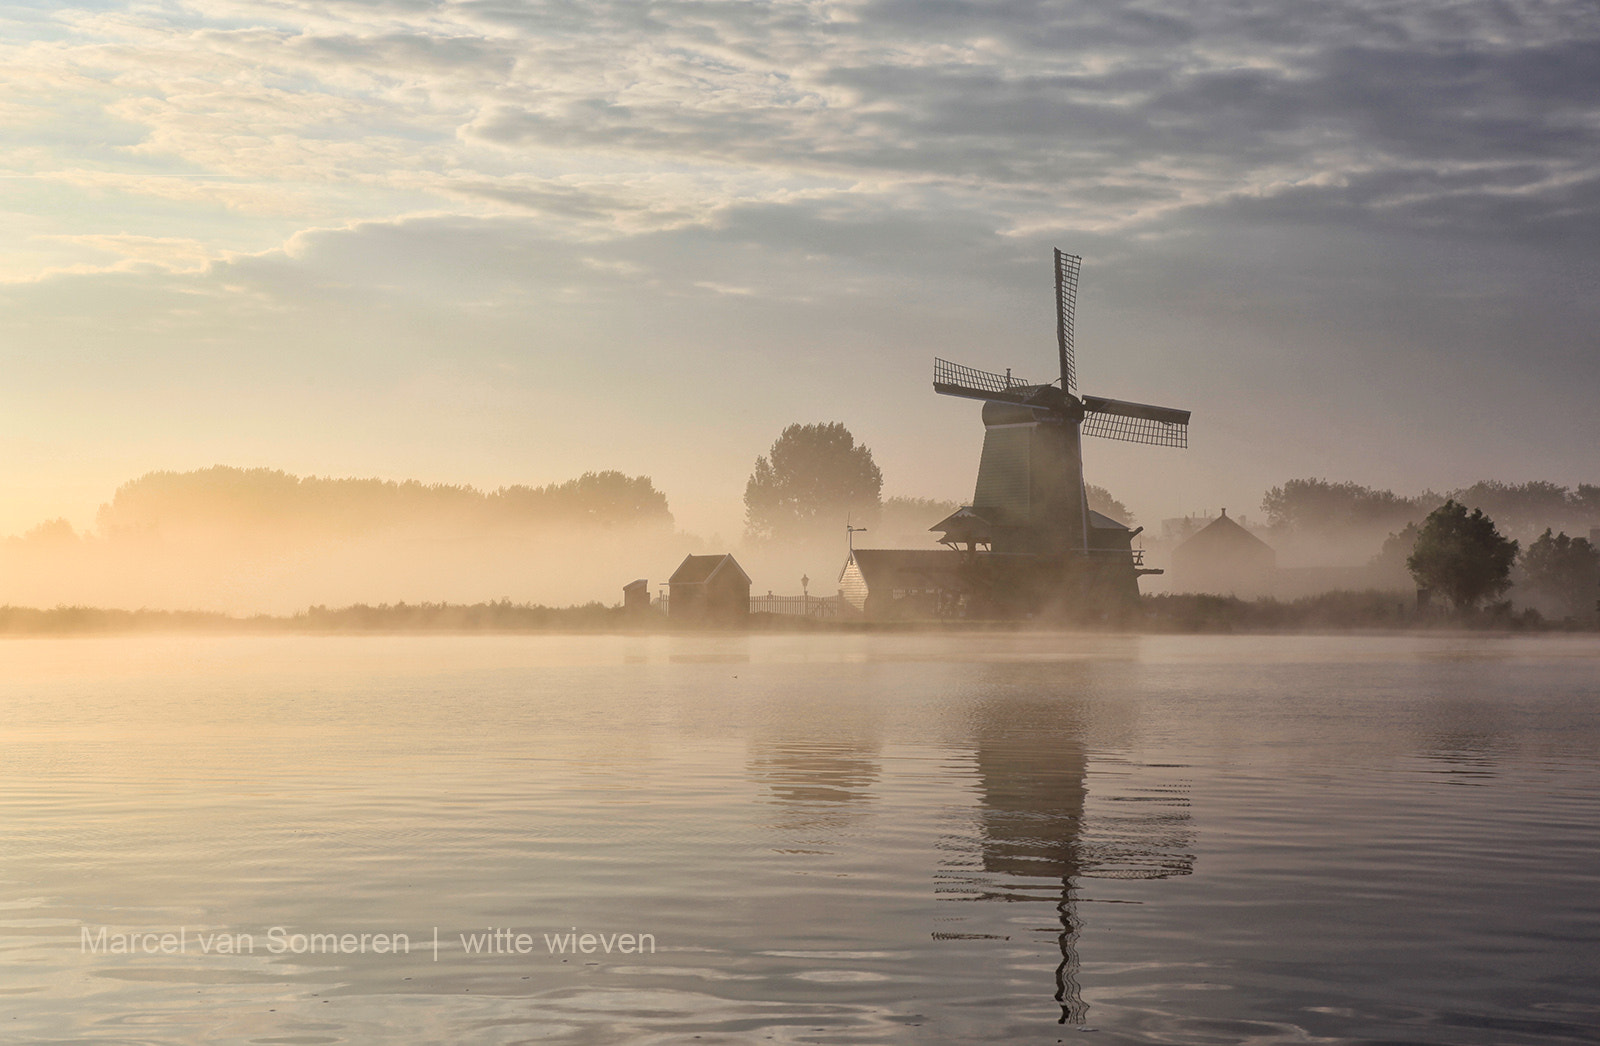 Photograph witte wieven by Marcel van Someren on 500px